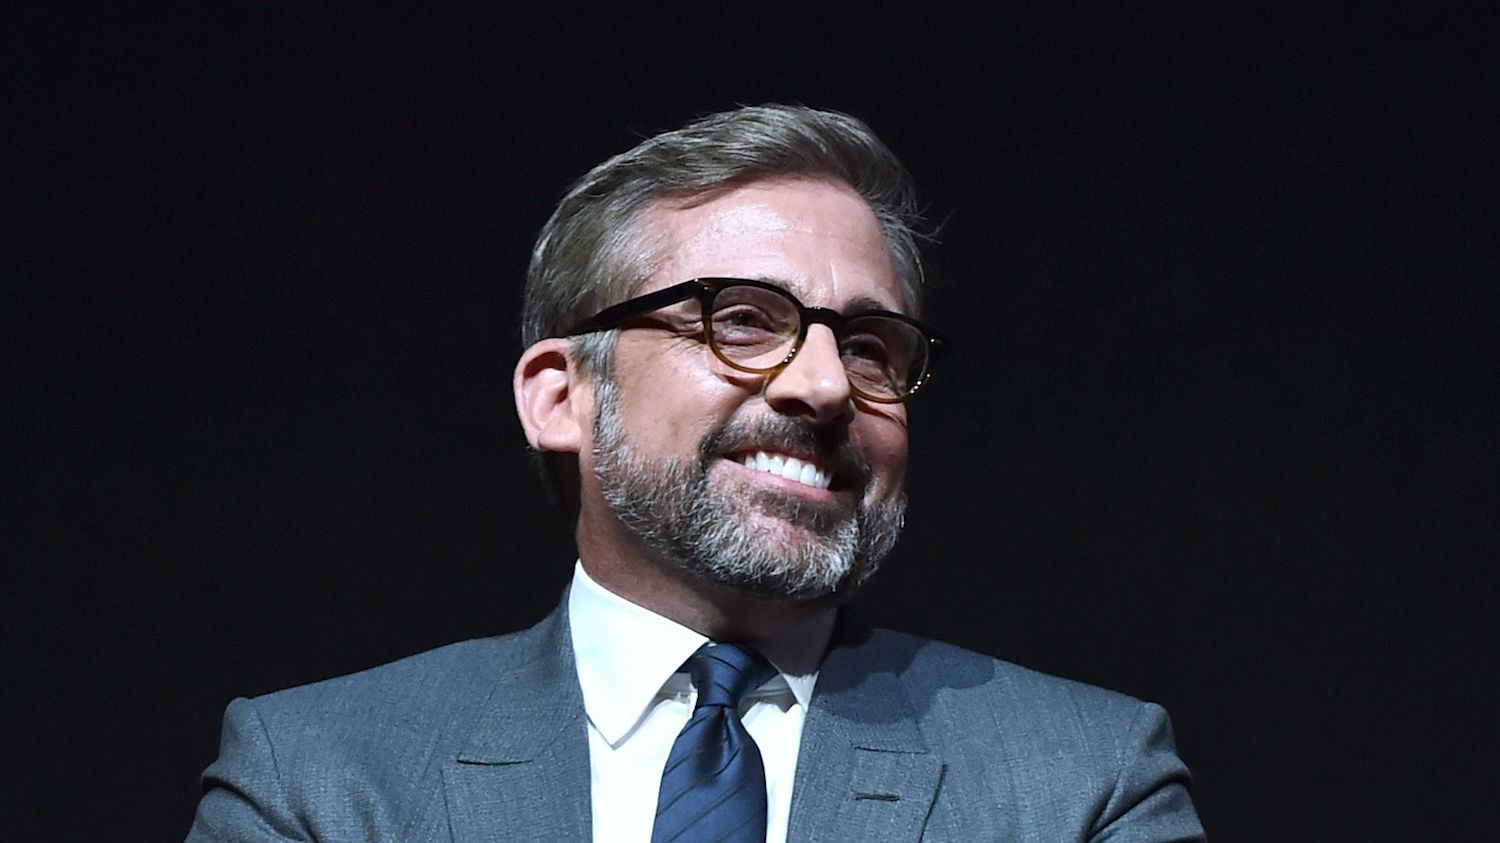 15 Surprising Facts About Steve Carell | Mental Floss